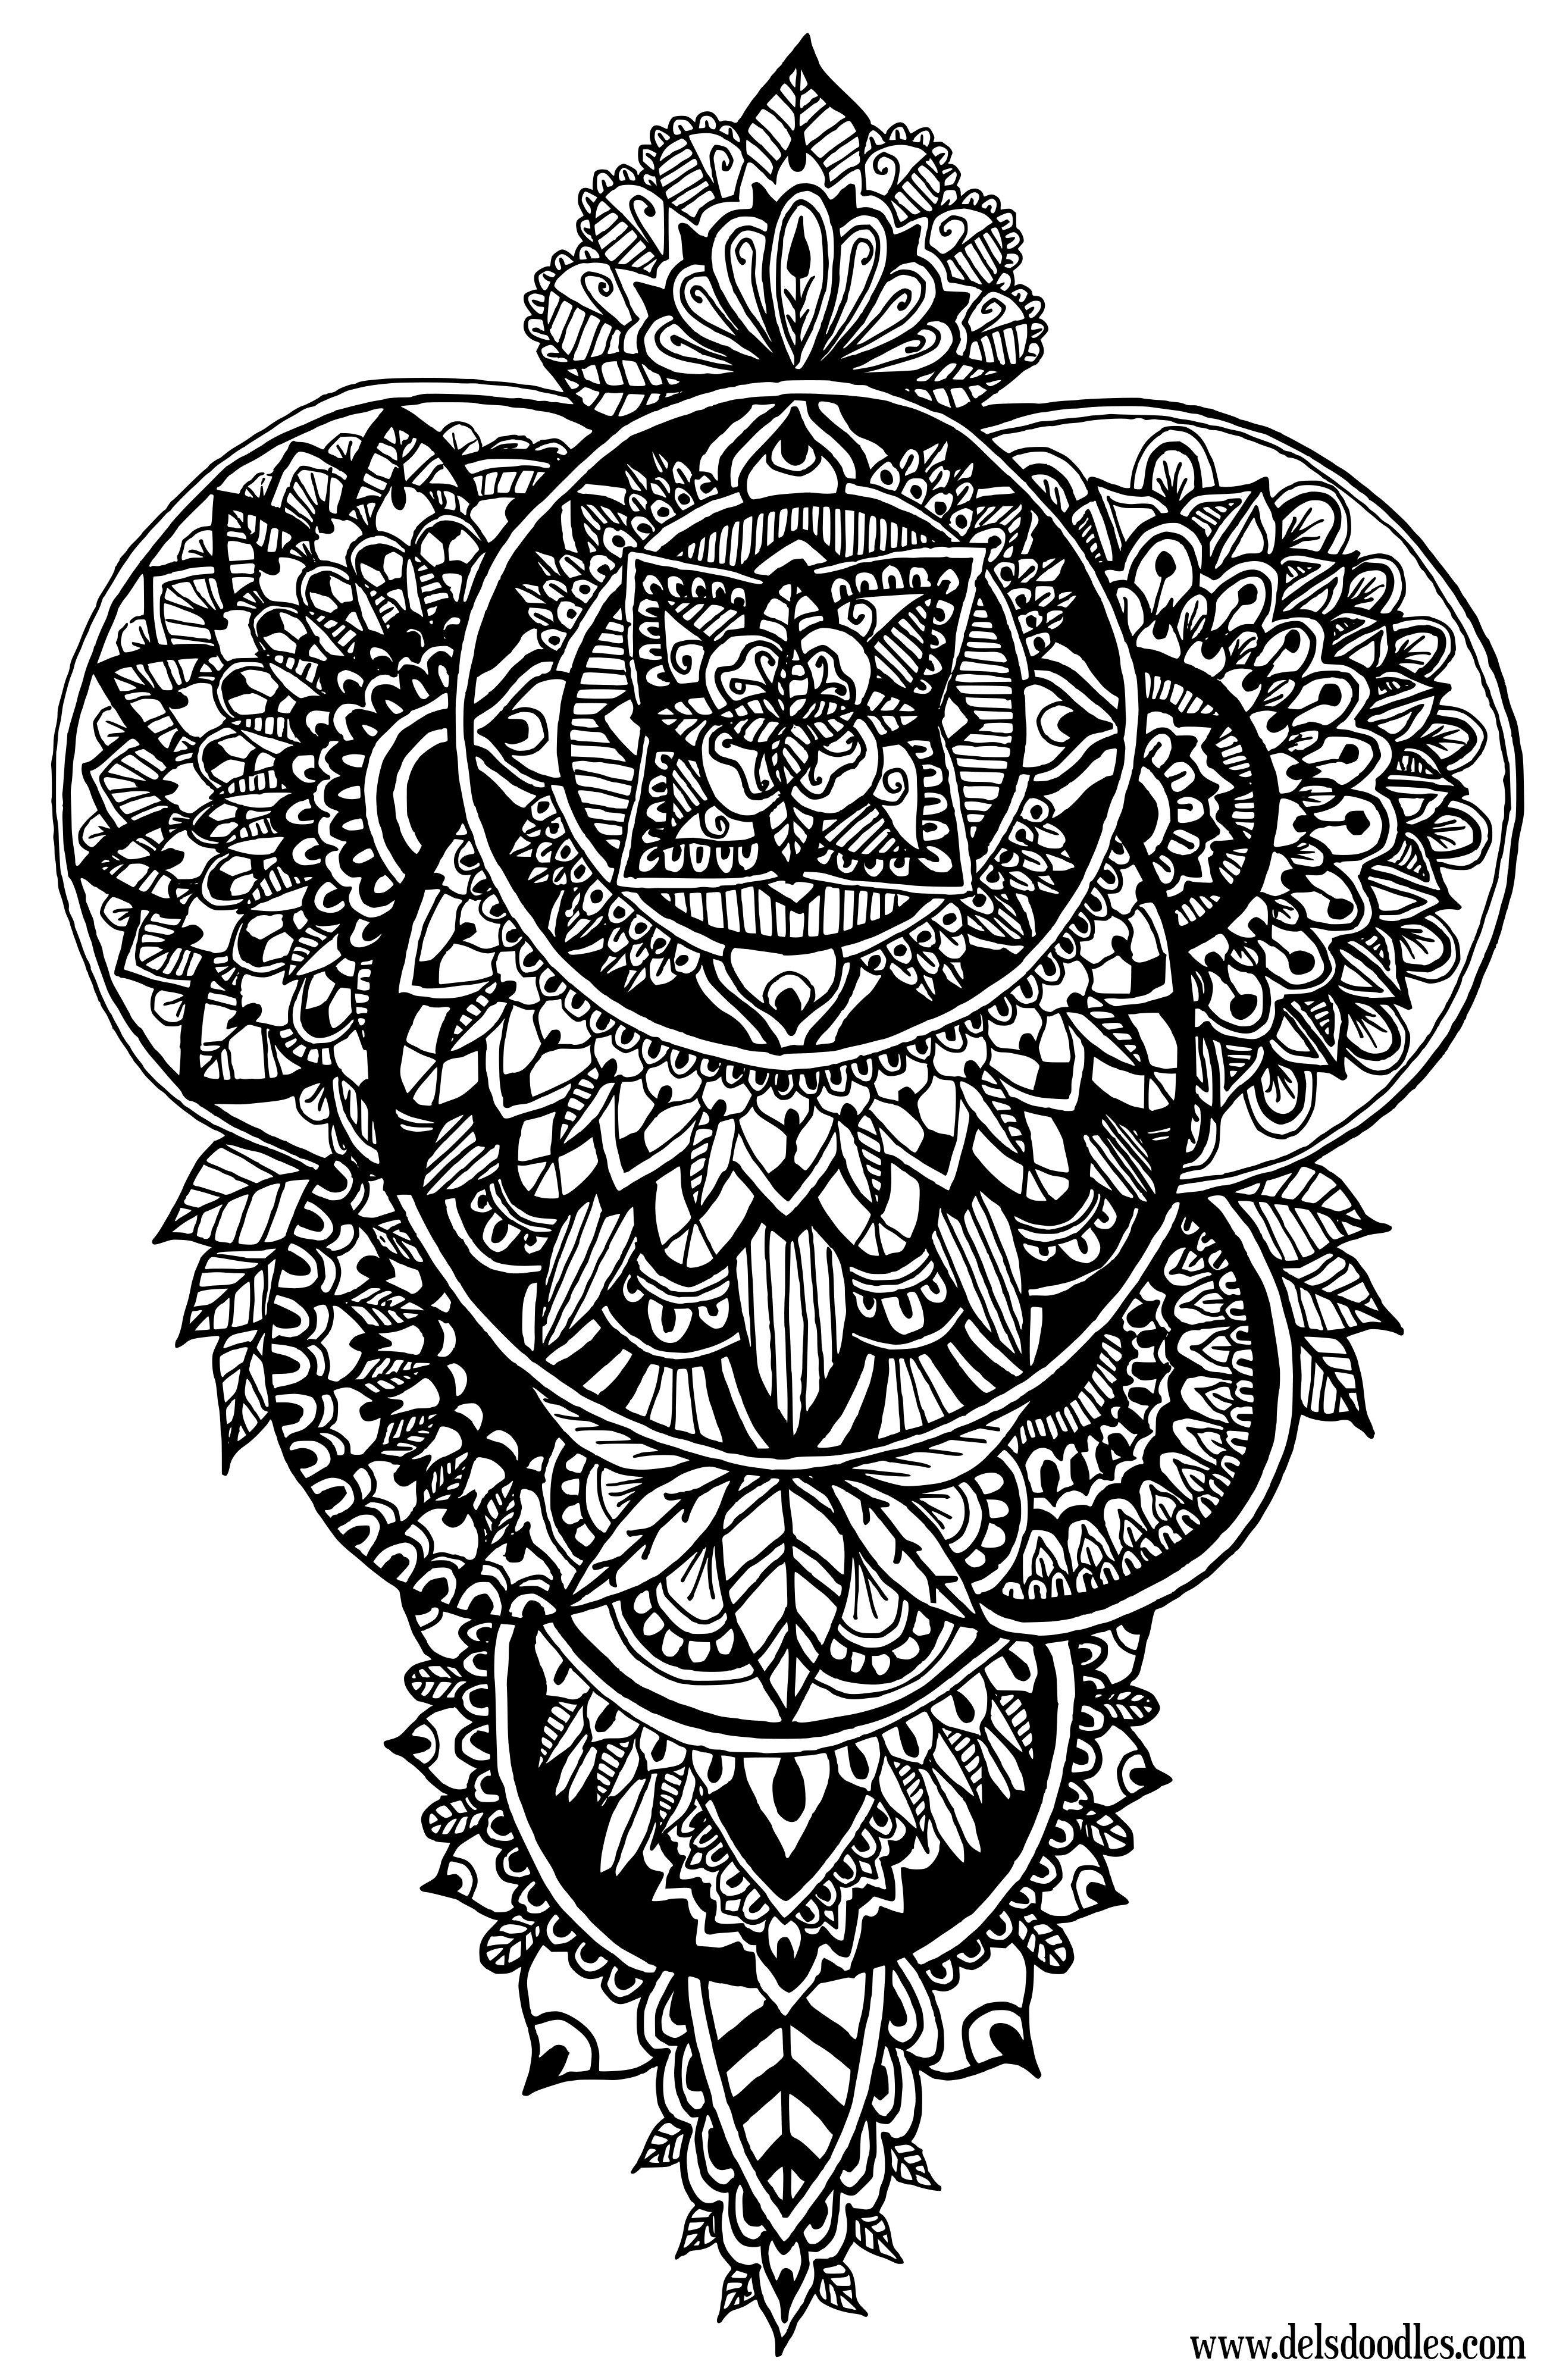 Disks Doodle Colouring Page By Welshpixie D9icqjg Png 2600 4000 Doodle Coloring Mandala Tattoo Design Half Sleeve Tattoos Designs